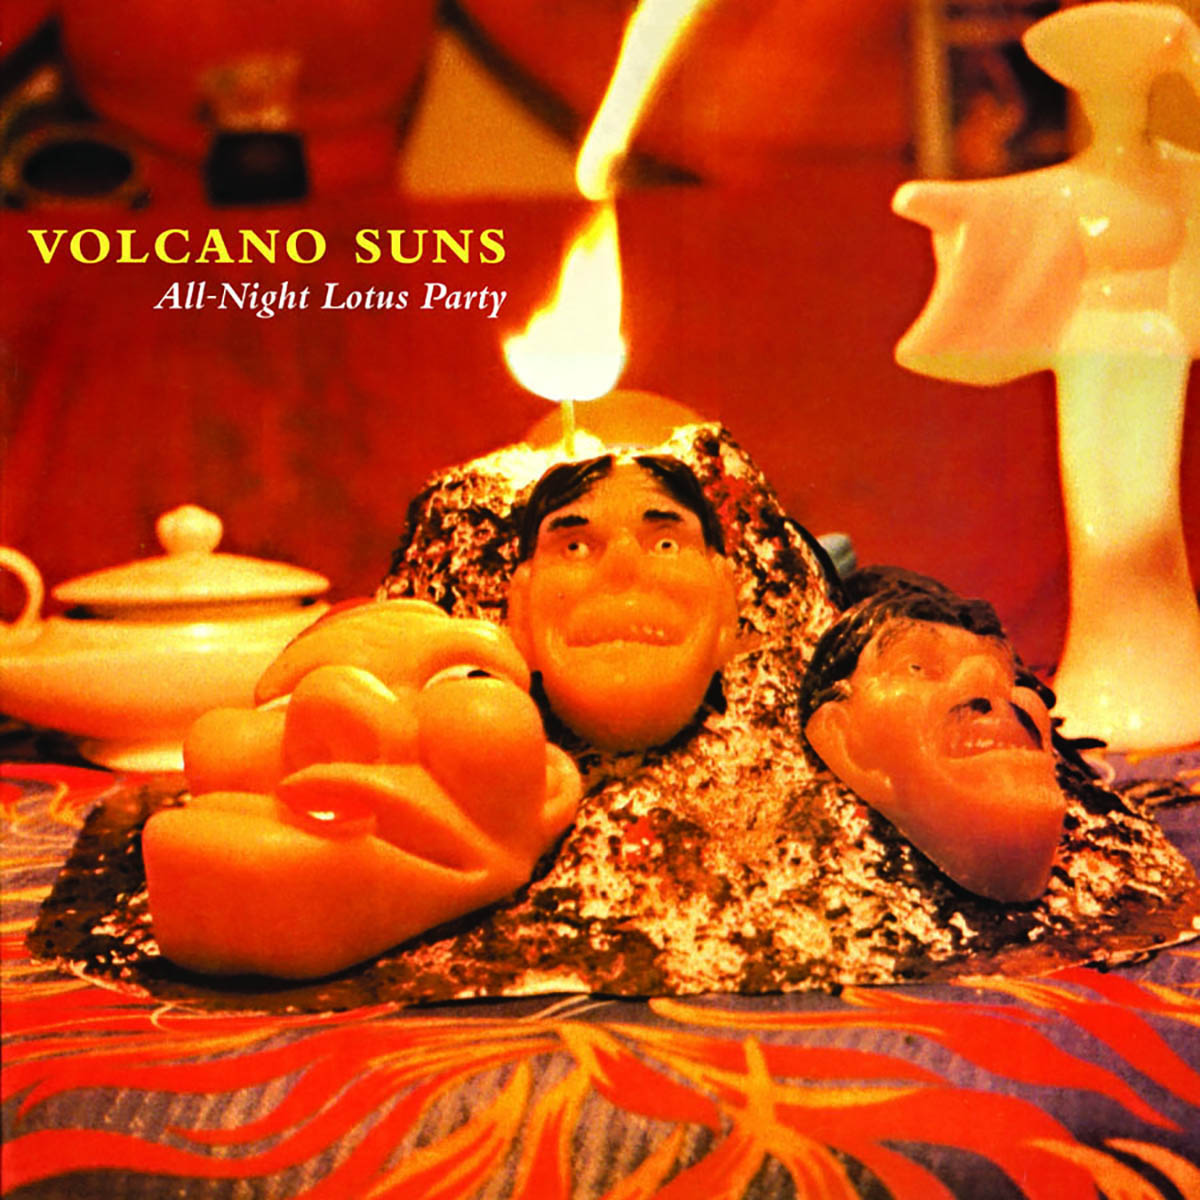 Volcano Suns, All-Night Lotus Party